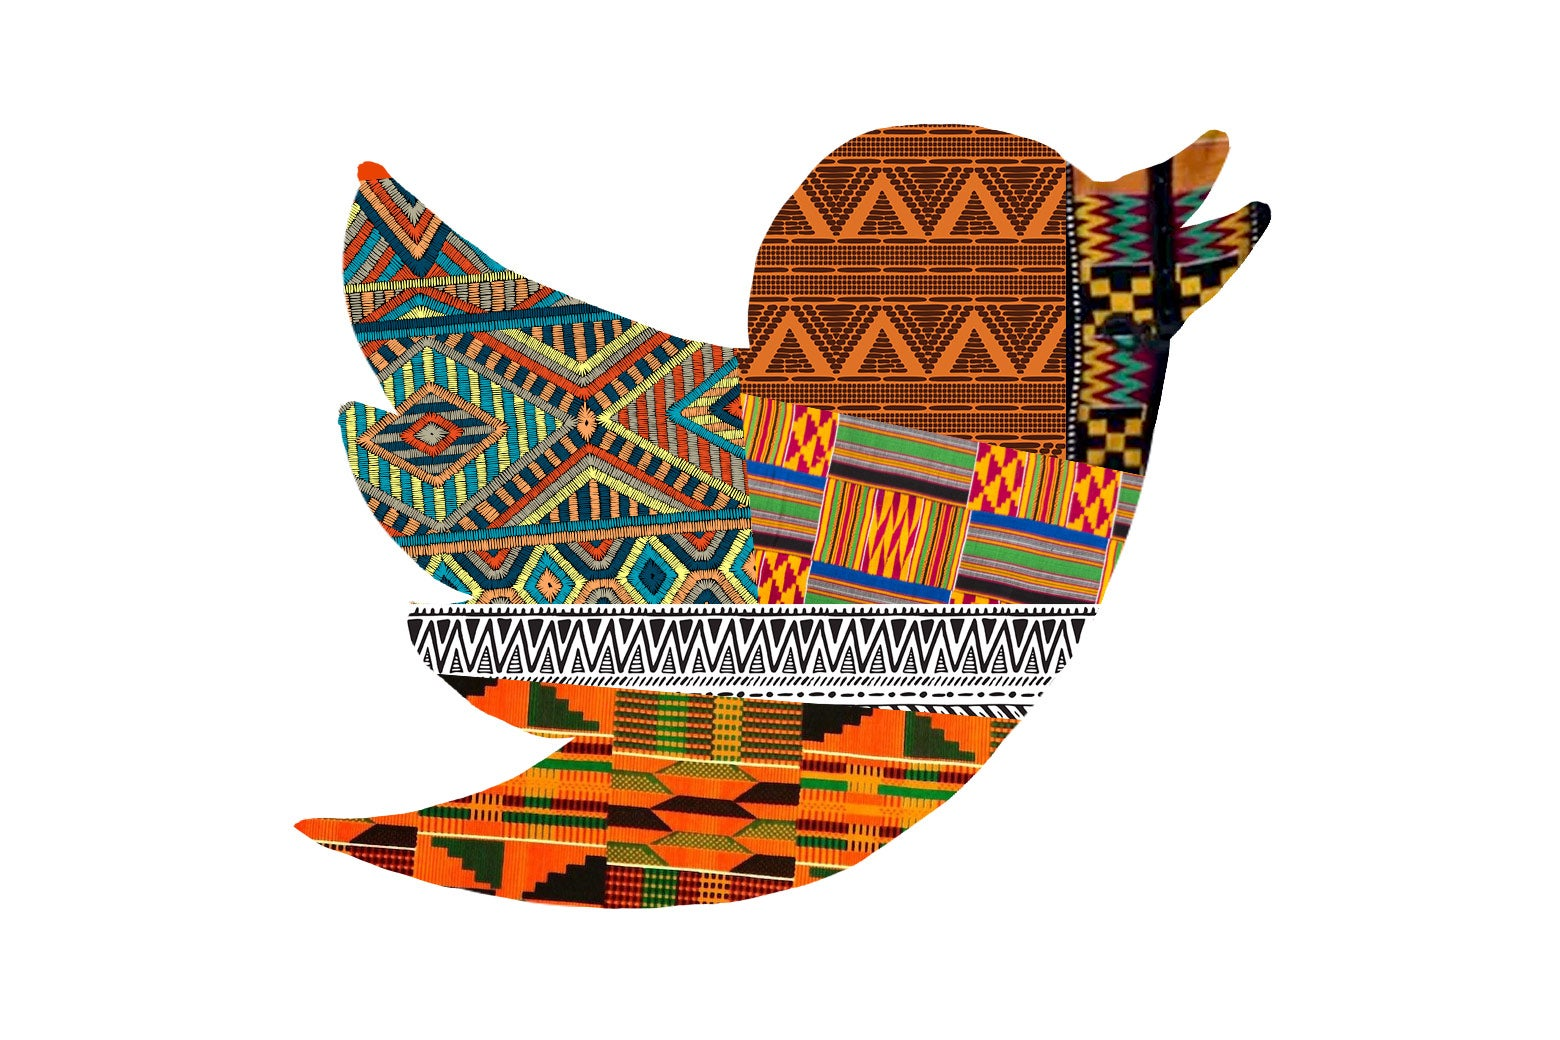 Twitter bird in African patterns.